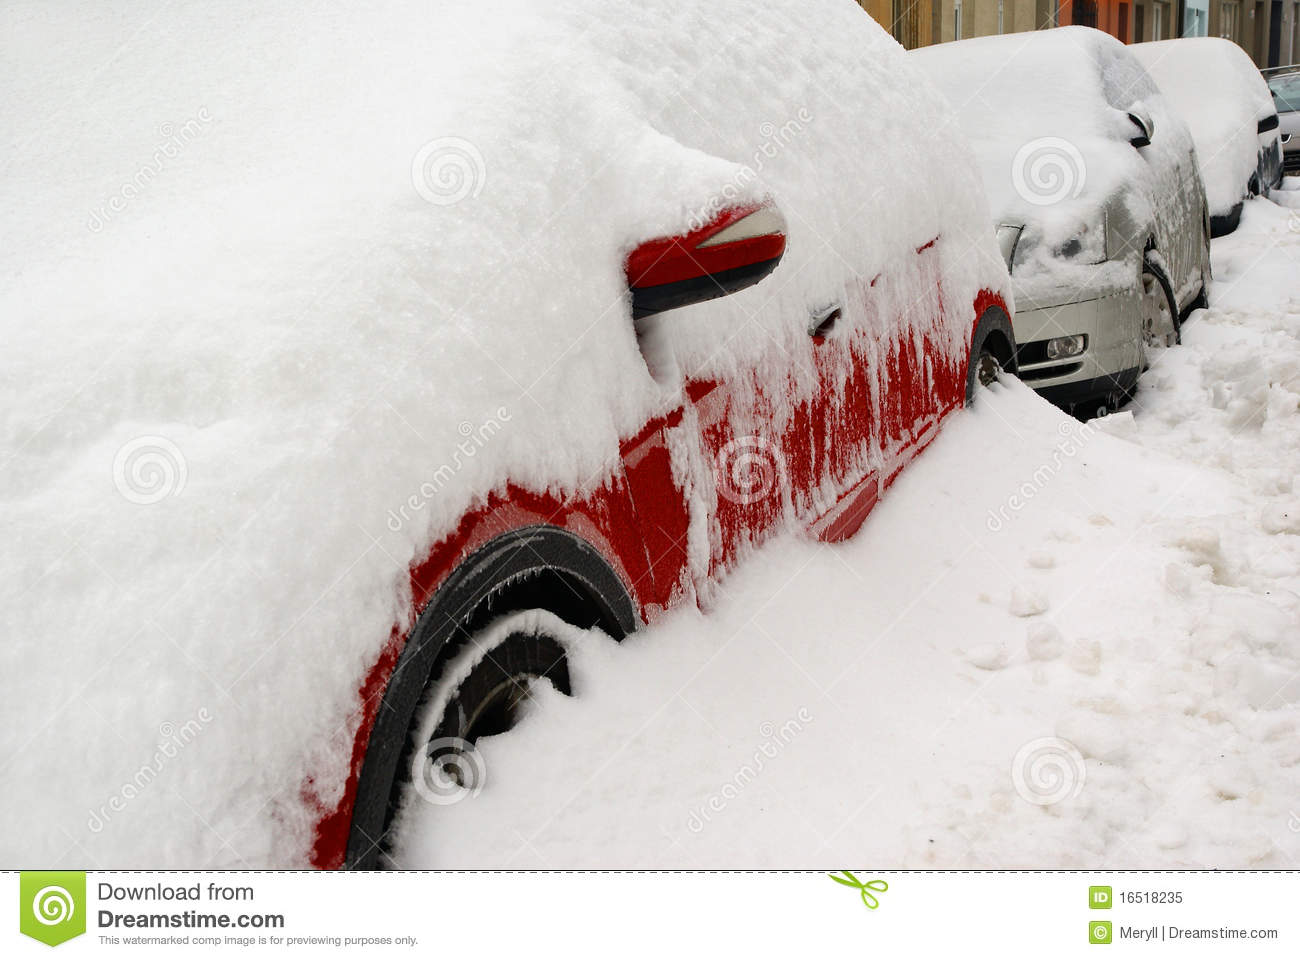 Car Winter Parking In Snow Royalty Free Stock Photo - Image: 16518235